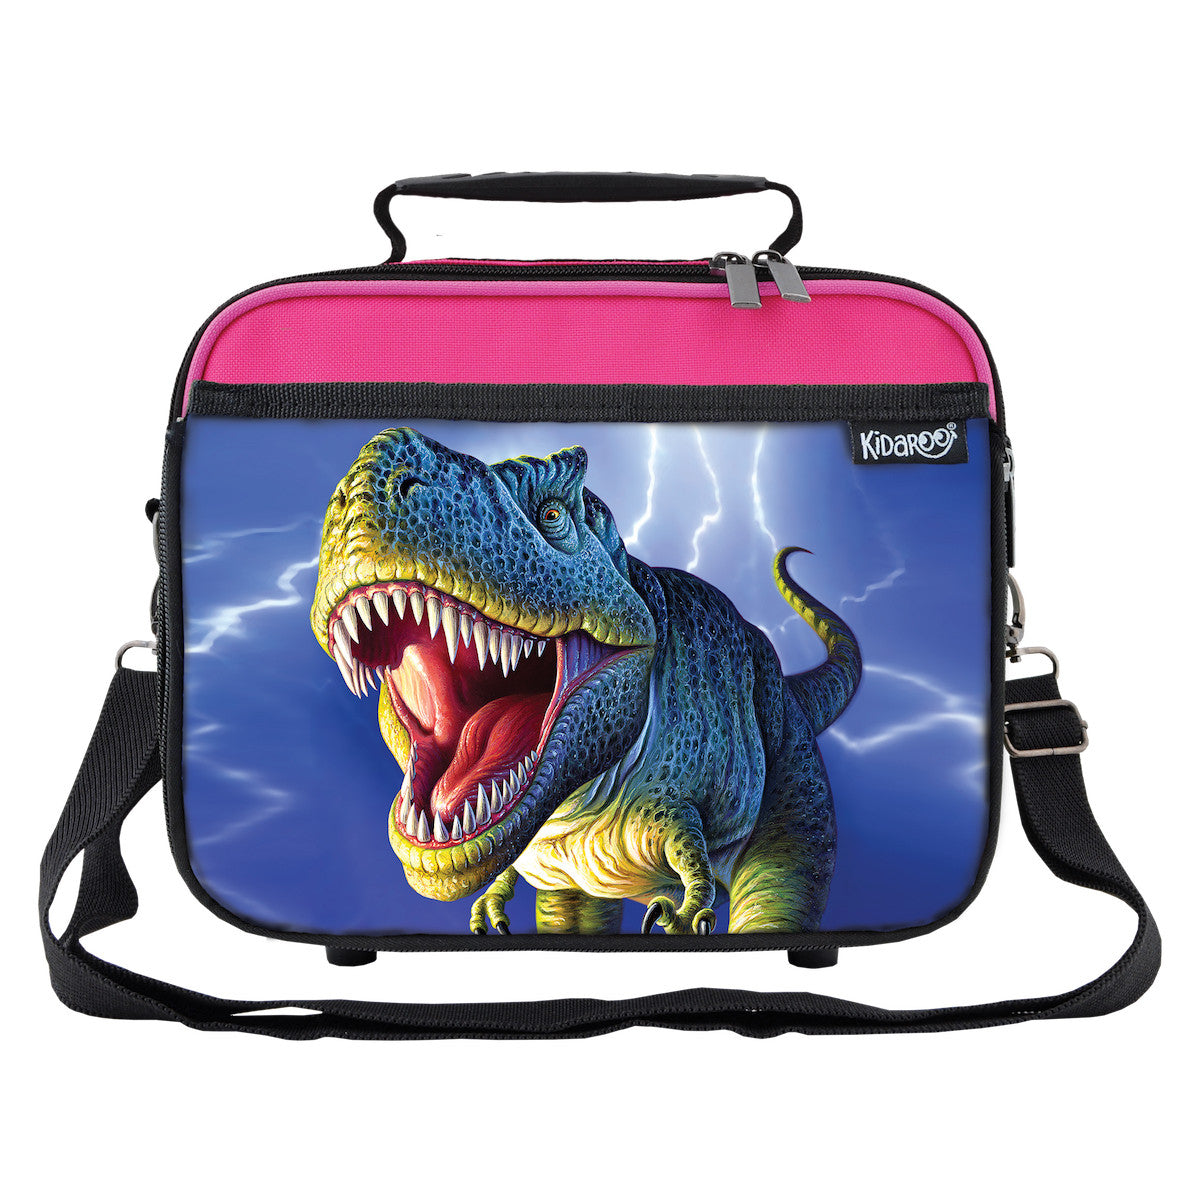 Kidaroo Pink Lightning Rex Dinosaur School Lunchbox Tote for Boys, Girls